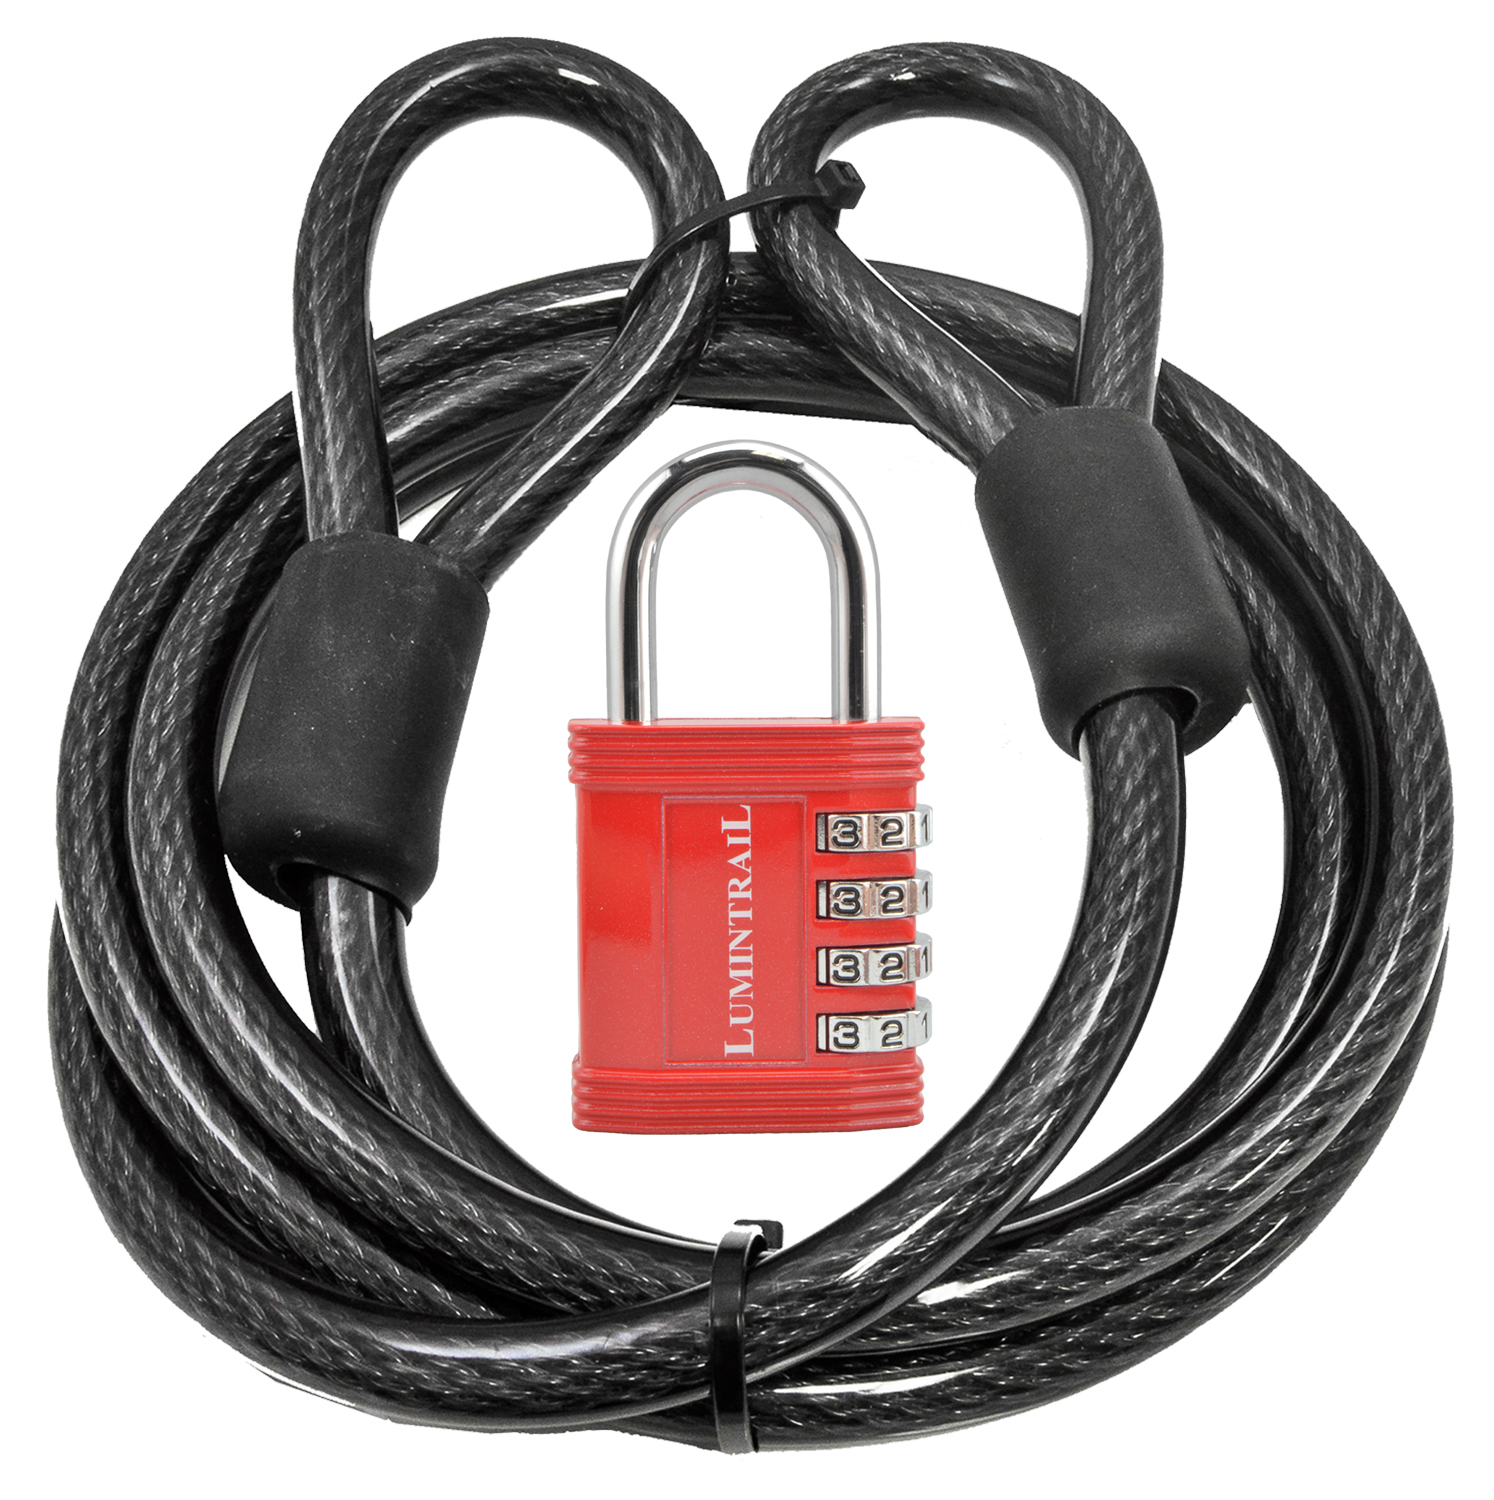 "Lumintrail 12mm (1/2 inch) Heavy-Duty Security Cable, Vinyl Coated Braided Steel, with Lumintrail 1"" Shackle Combination Padlock (4-ft, 7-ft, or 15-ft)"